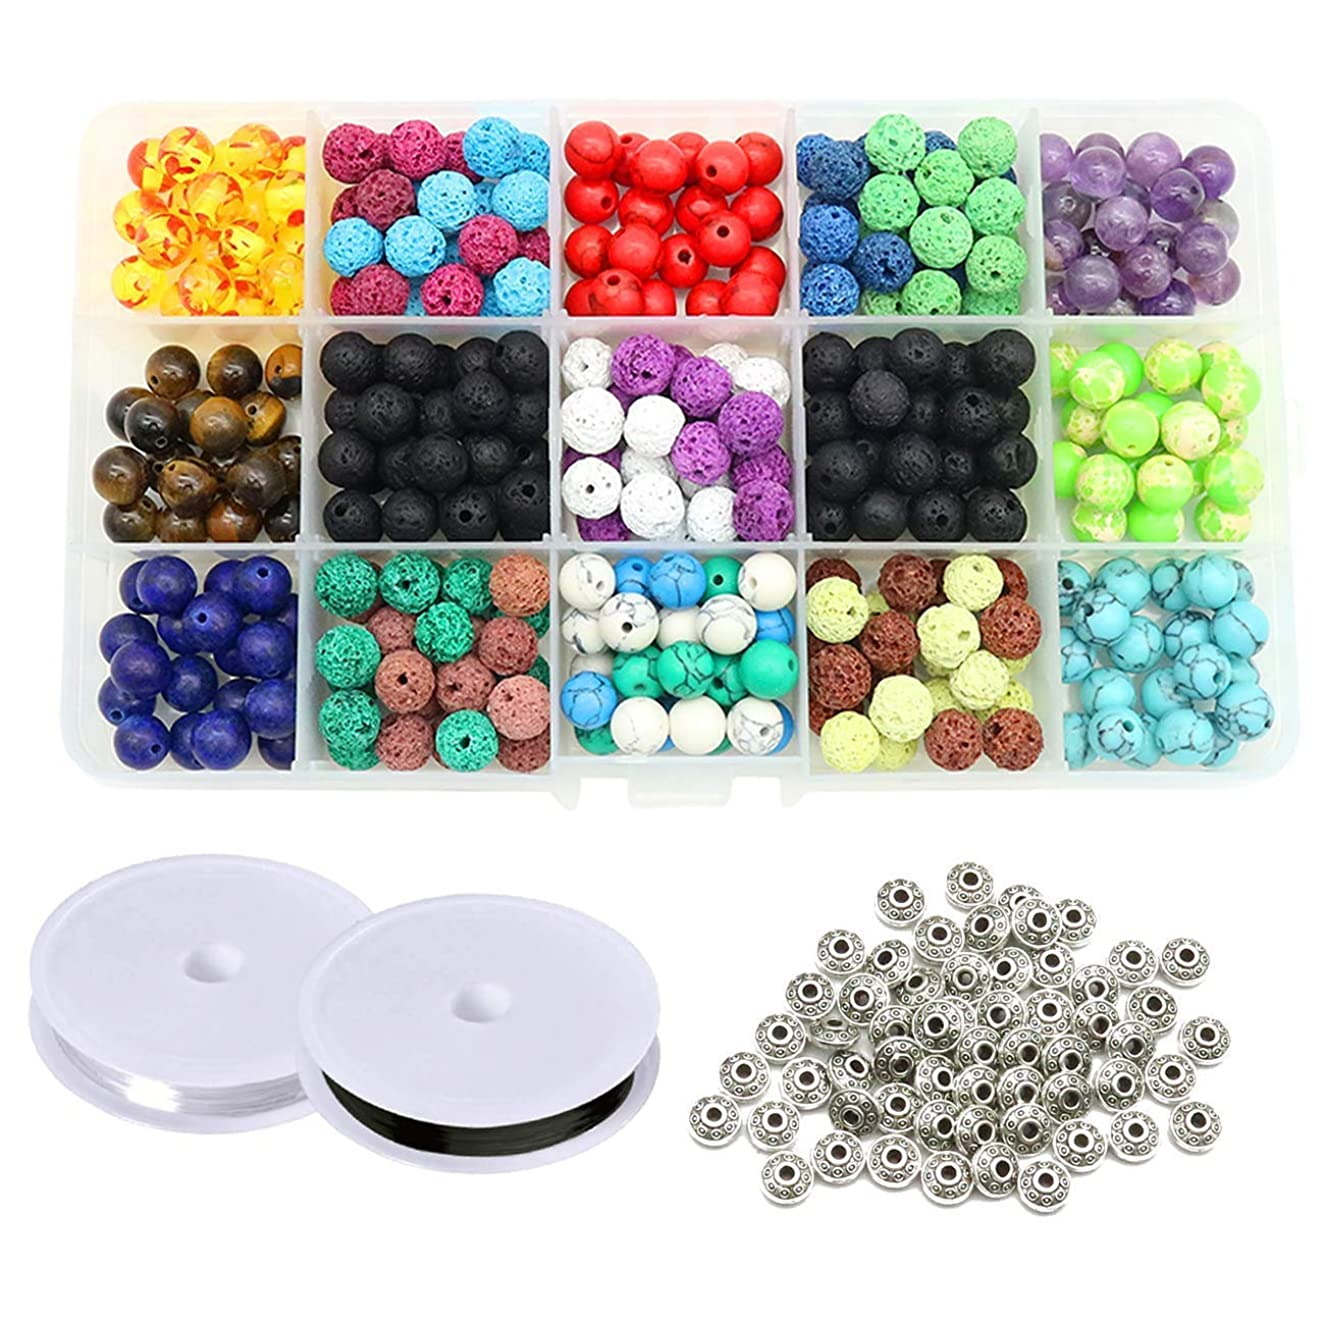 JIWINNER 410 Pieces Assorted Colored Lava Rock Stone Volcanic Beads Spacer Beads with Storage Box and 2 Roll Elastic Crystal String for Jewelry Making Bracelet Necklace DIY (410)